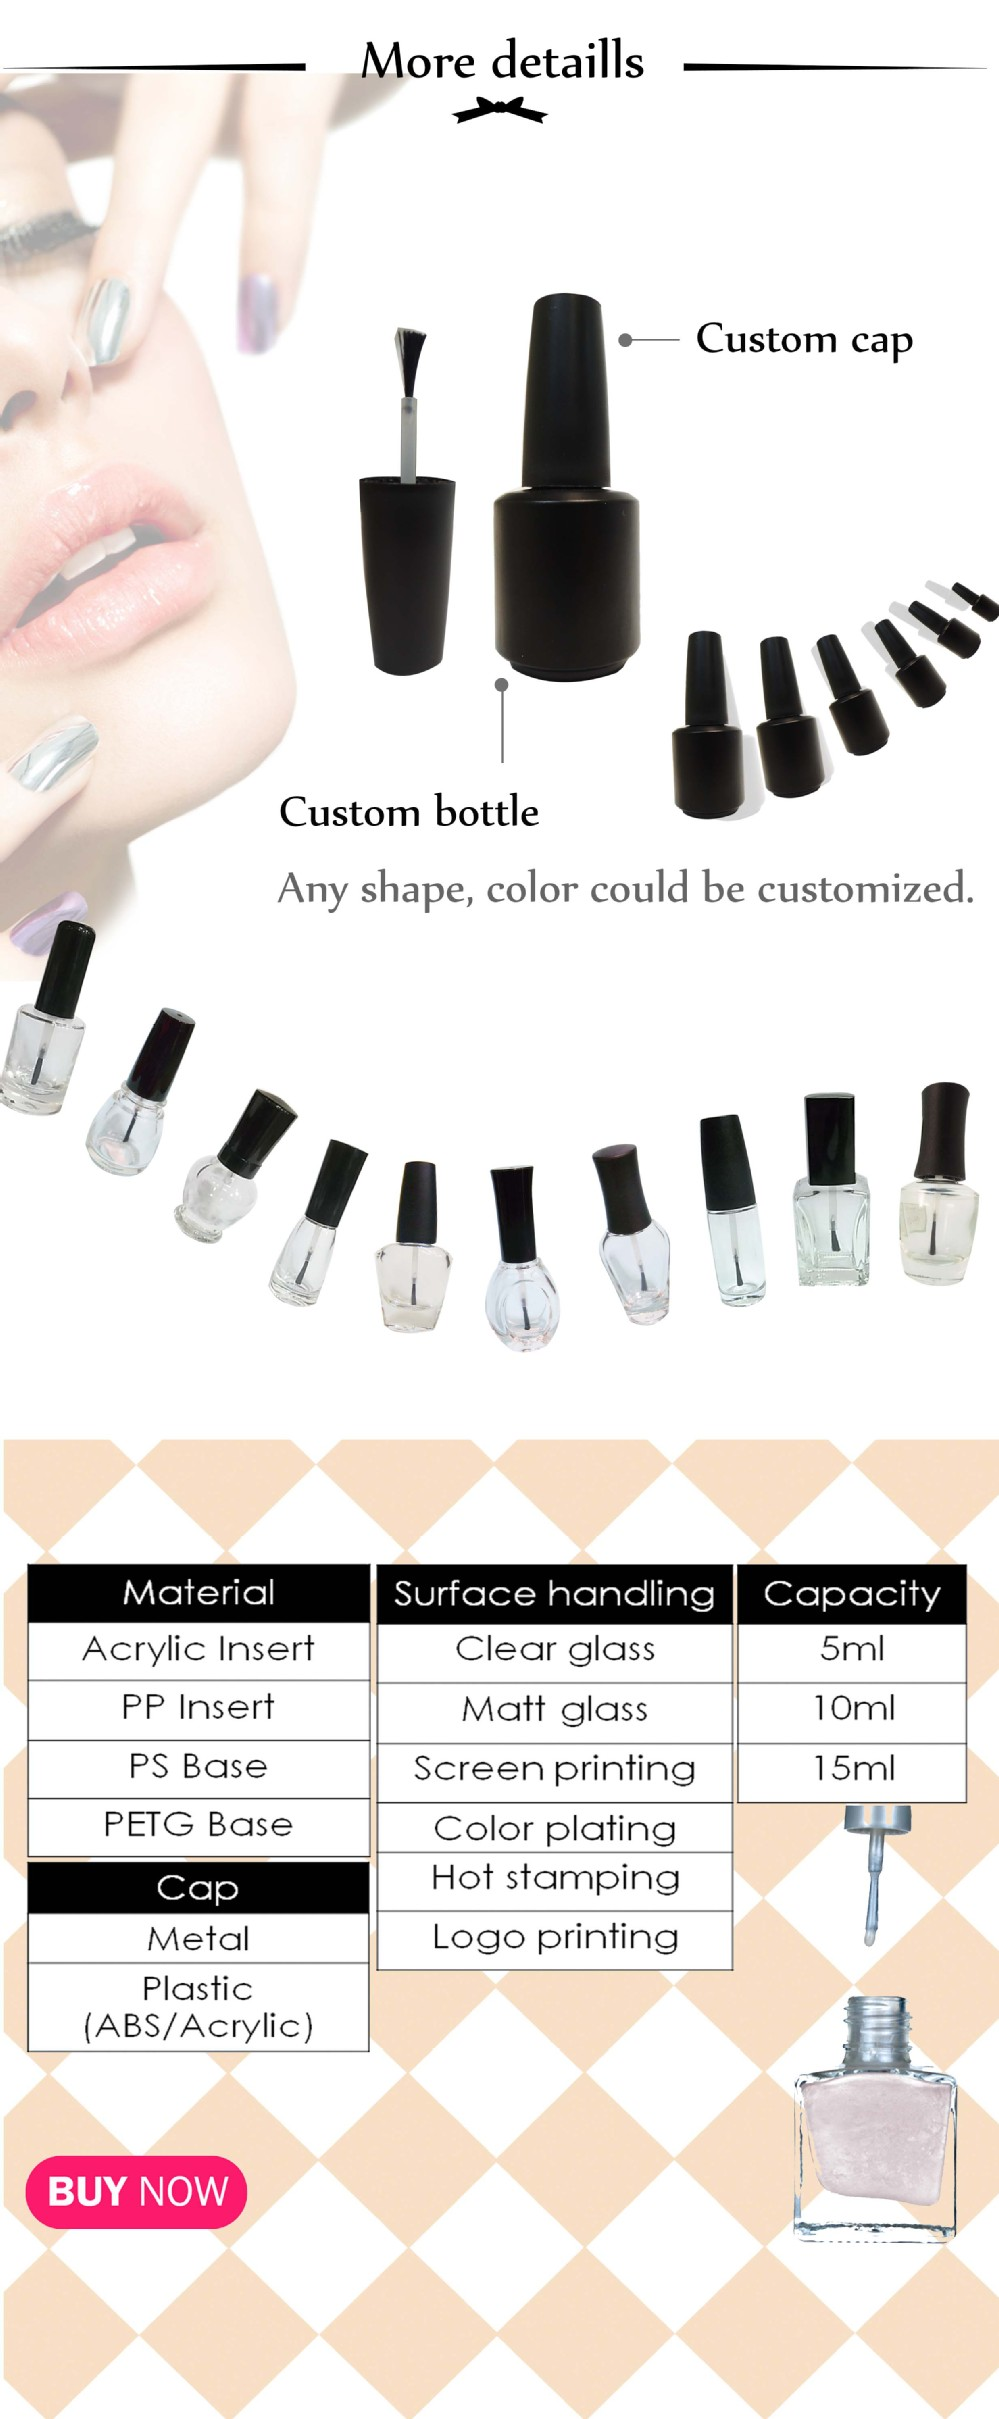 Pervision crystal clear 7ml empty nail polish bottle with wooden packaging